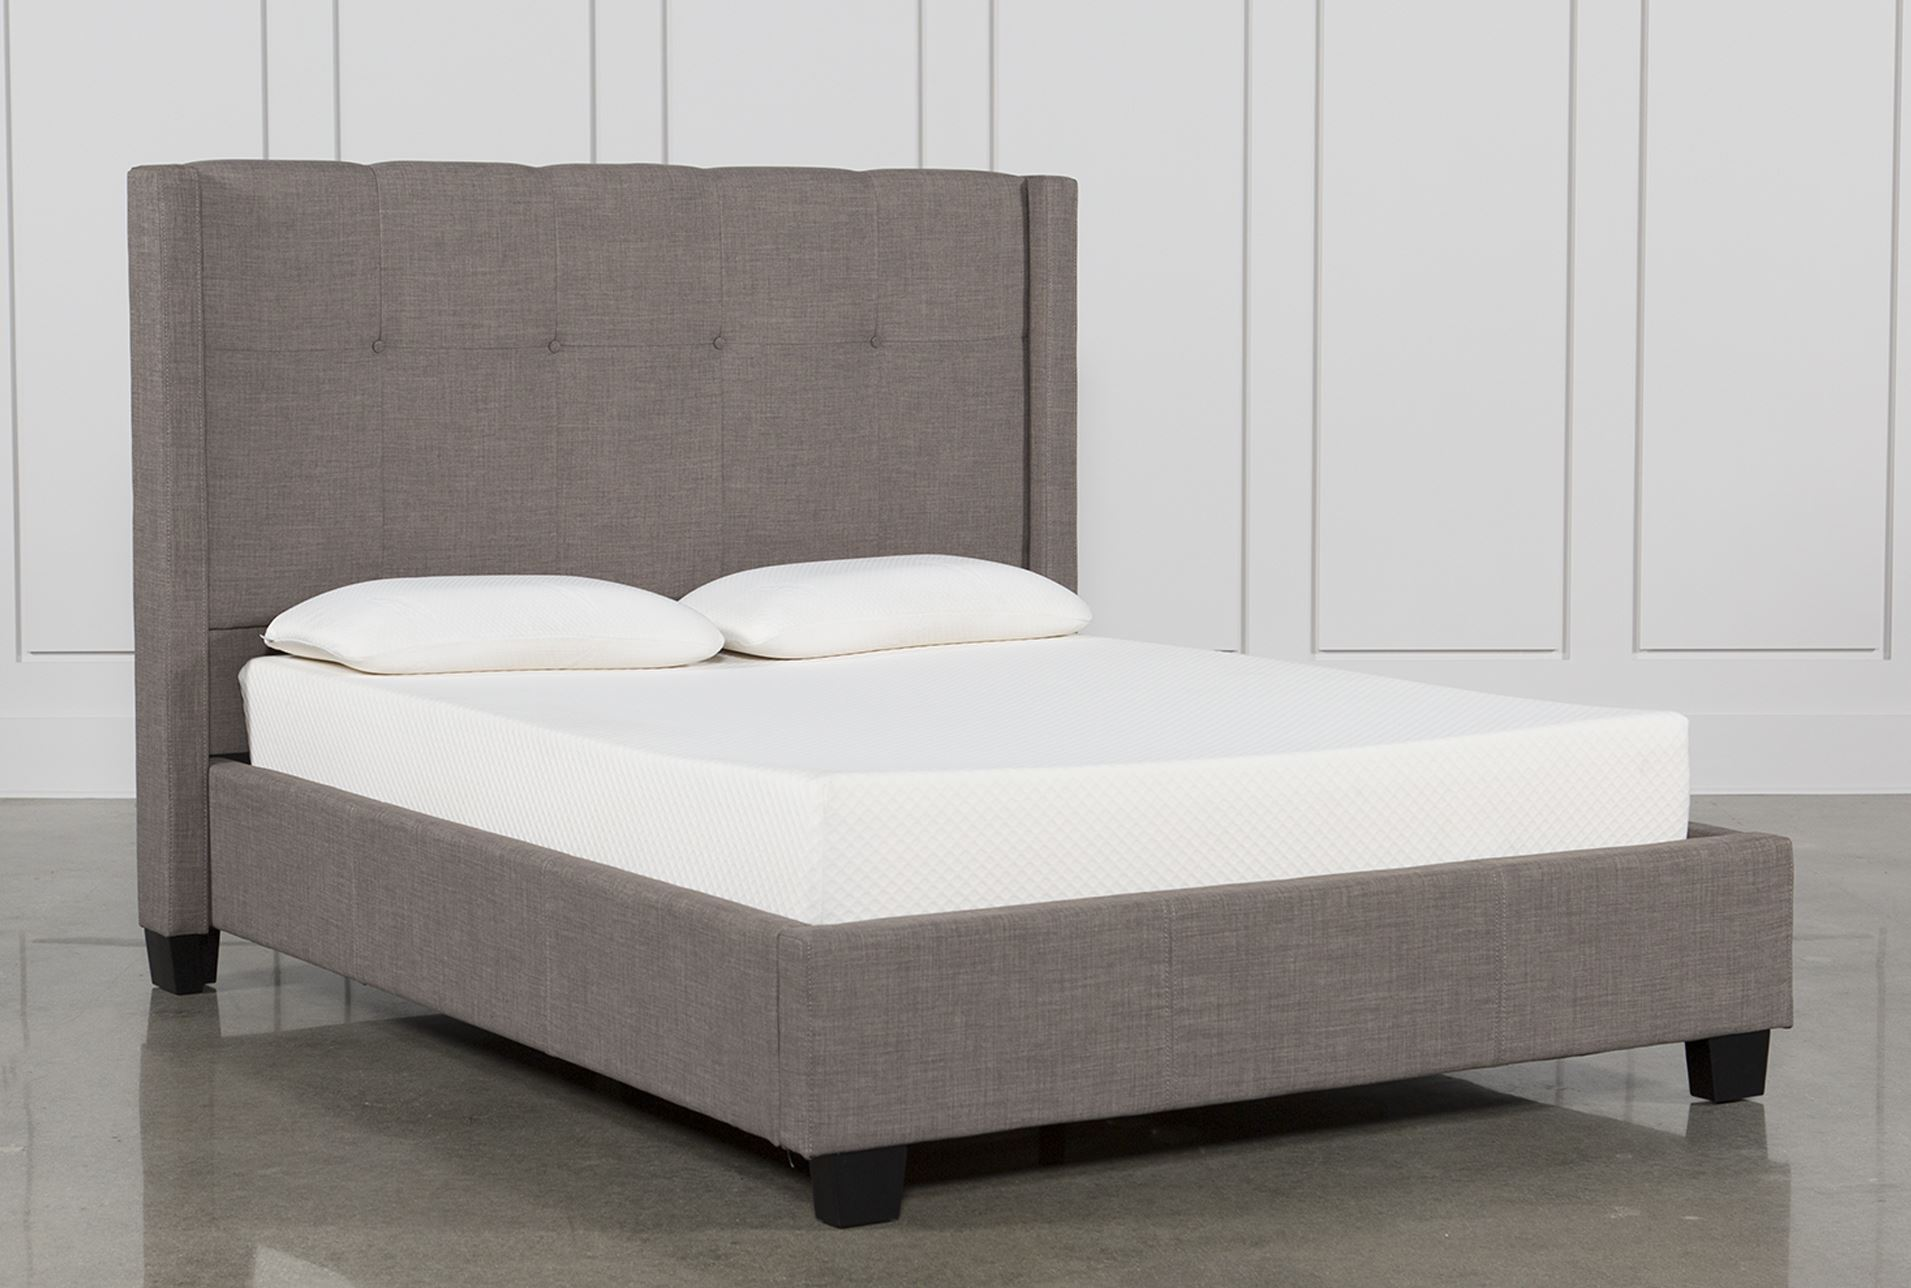 Damon II Full Upholstered Platform Bed